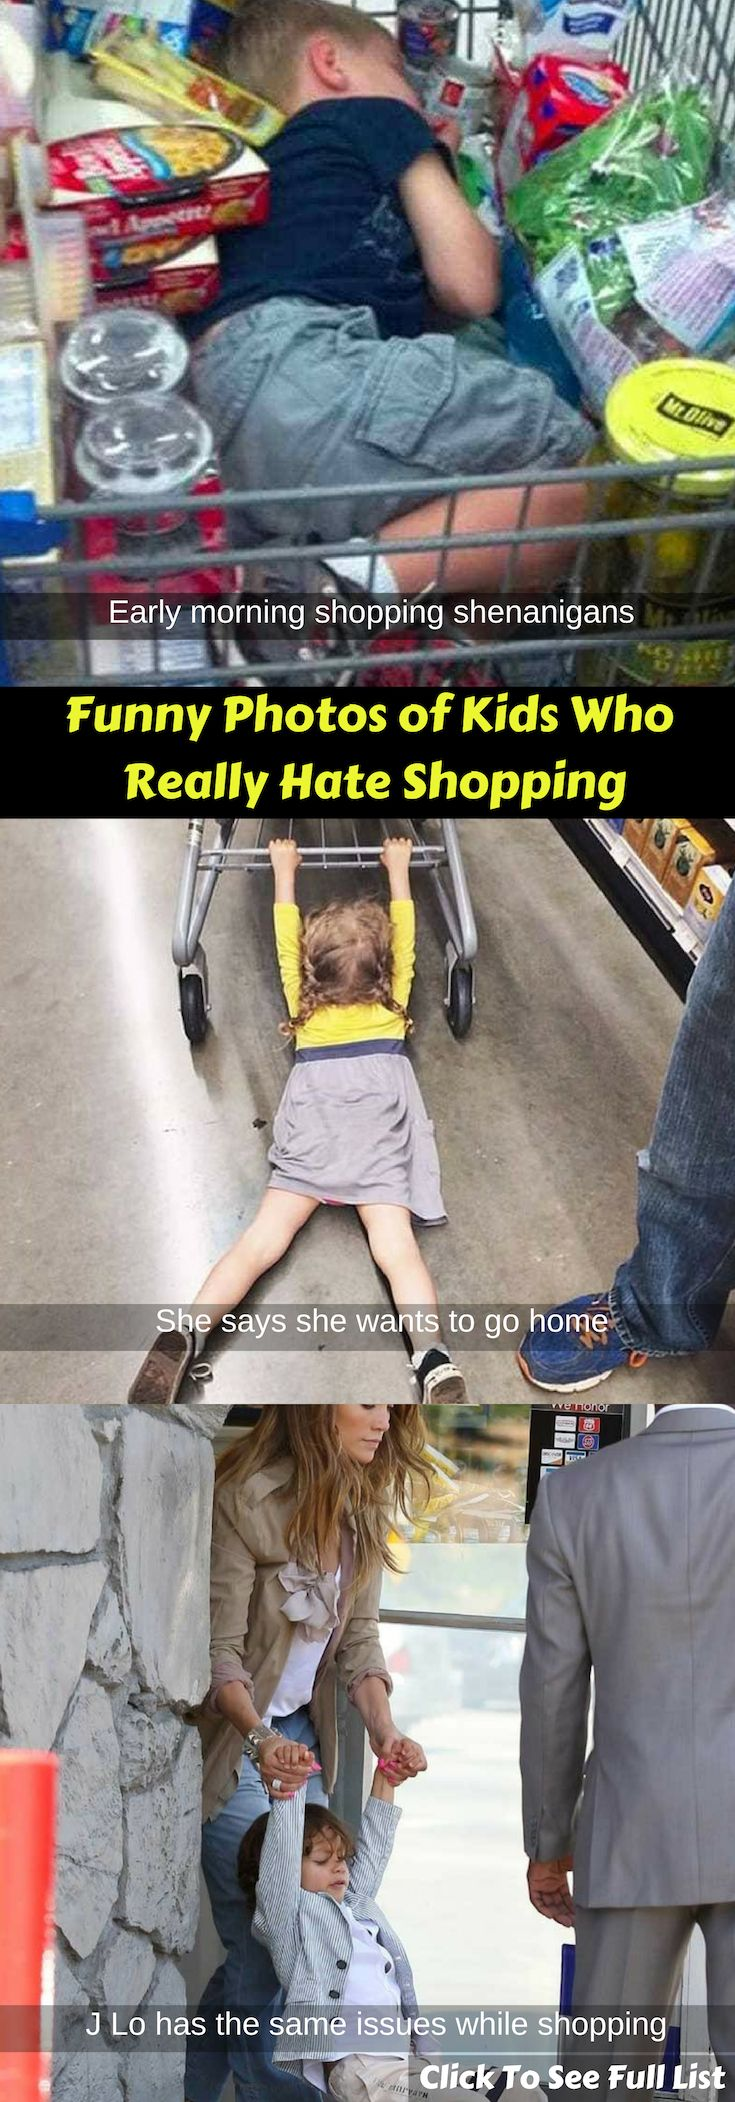 Pin on Funny Things |Hate Shopping Jokes